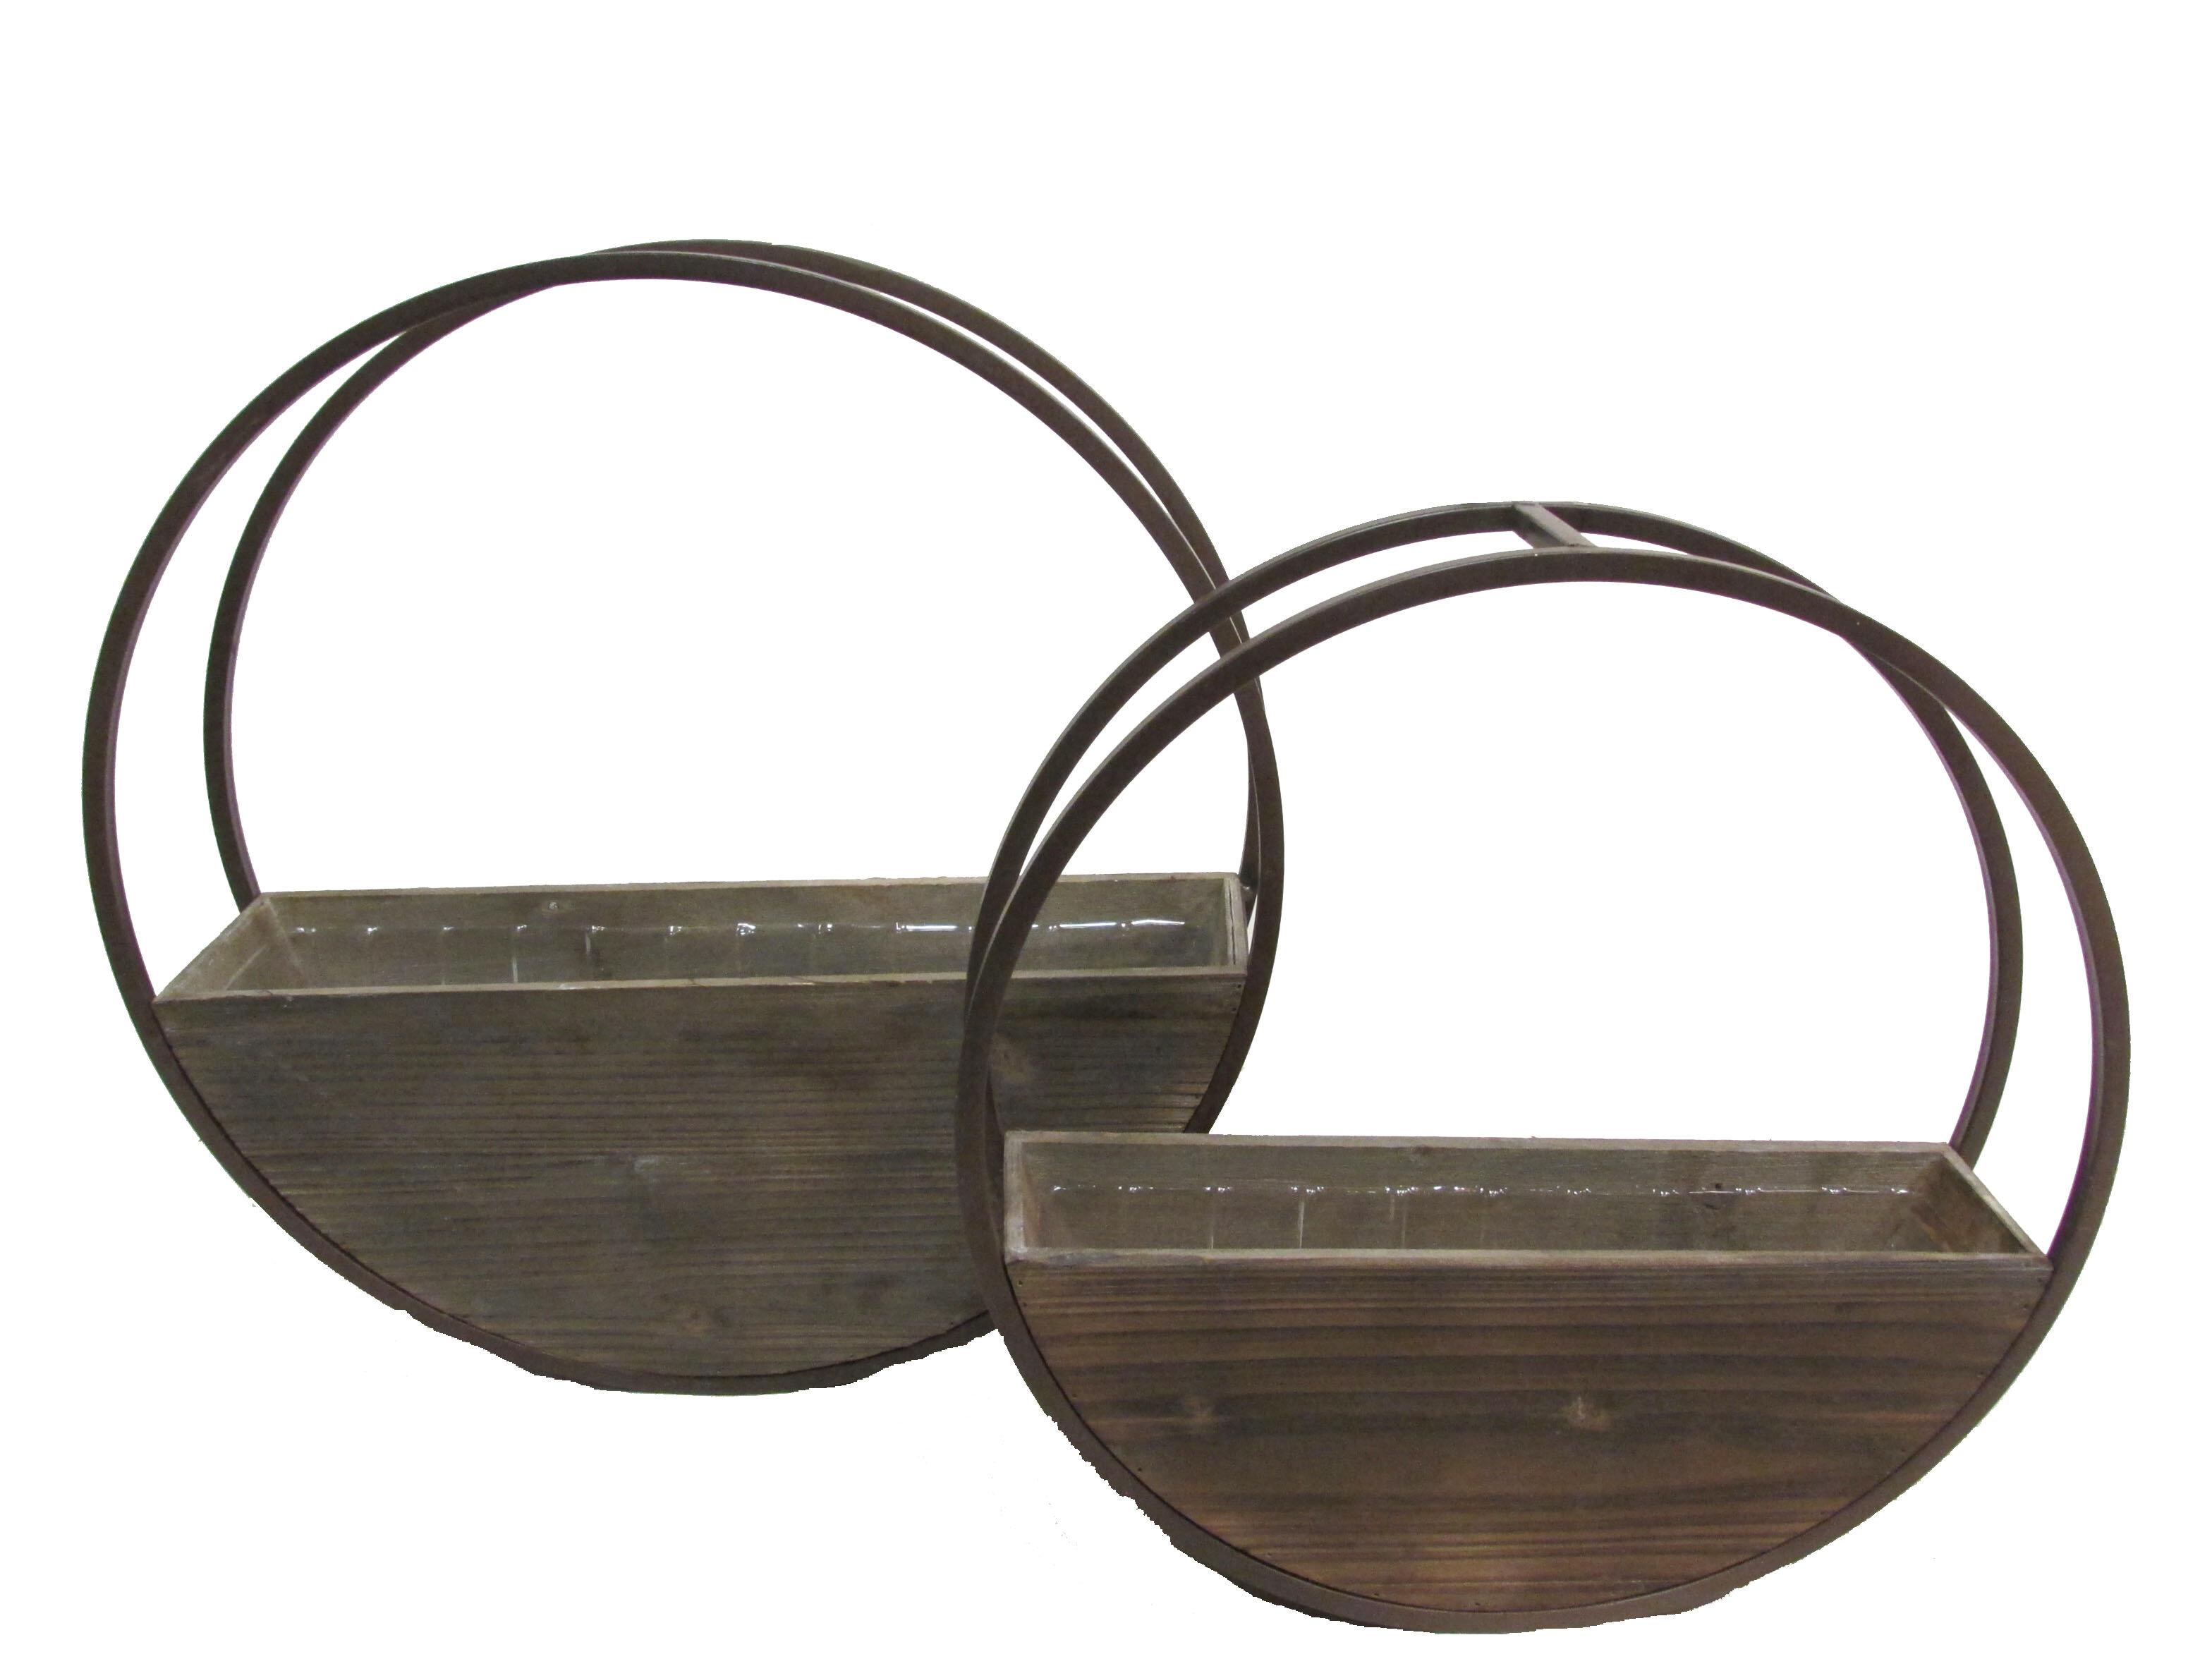 Union Rustic Aarush Round And Metal Framing Wall Hanging 2 Piece Wood Wall Planter Set Reviews Wayfair